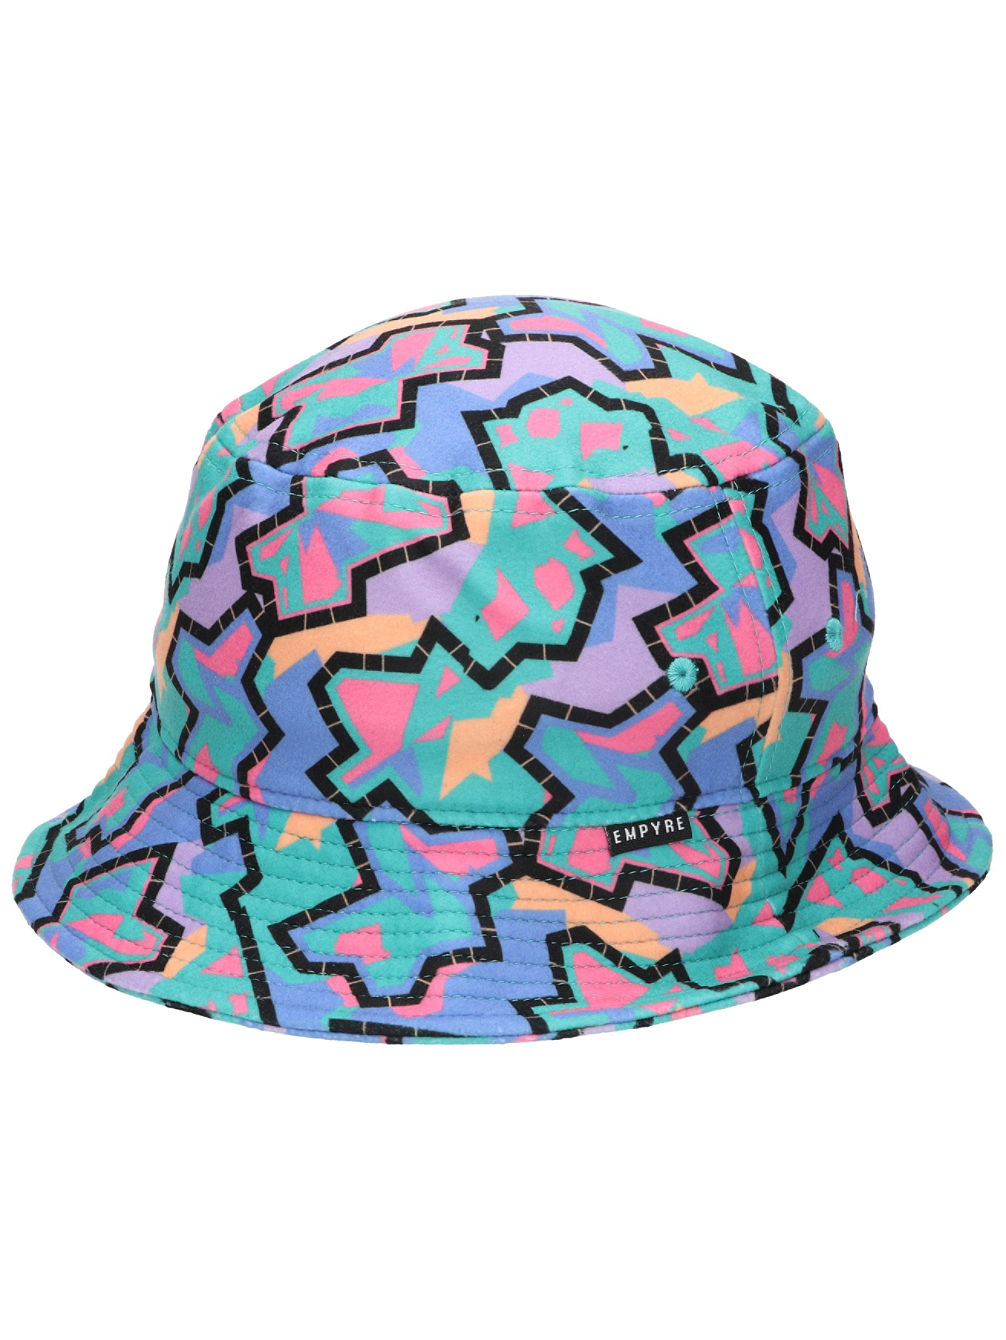 a20ed2b36fa Buy Empyre Aspen Throwback Bucket Hat online at Blue Tomato